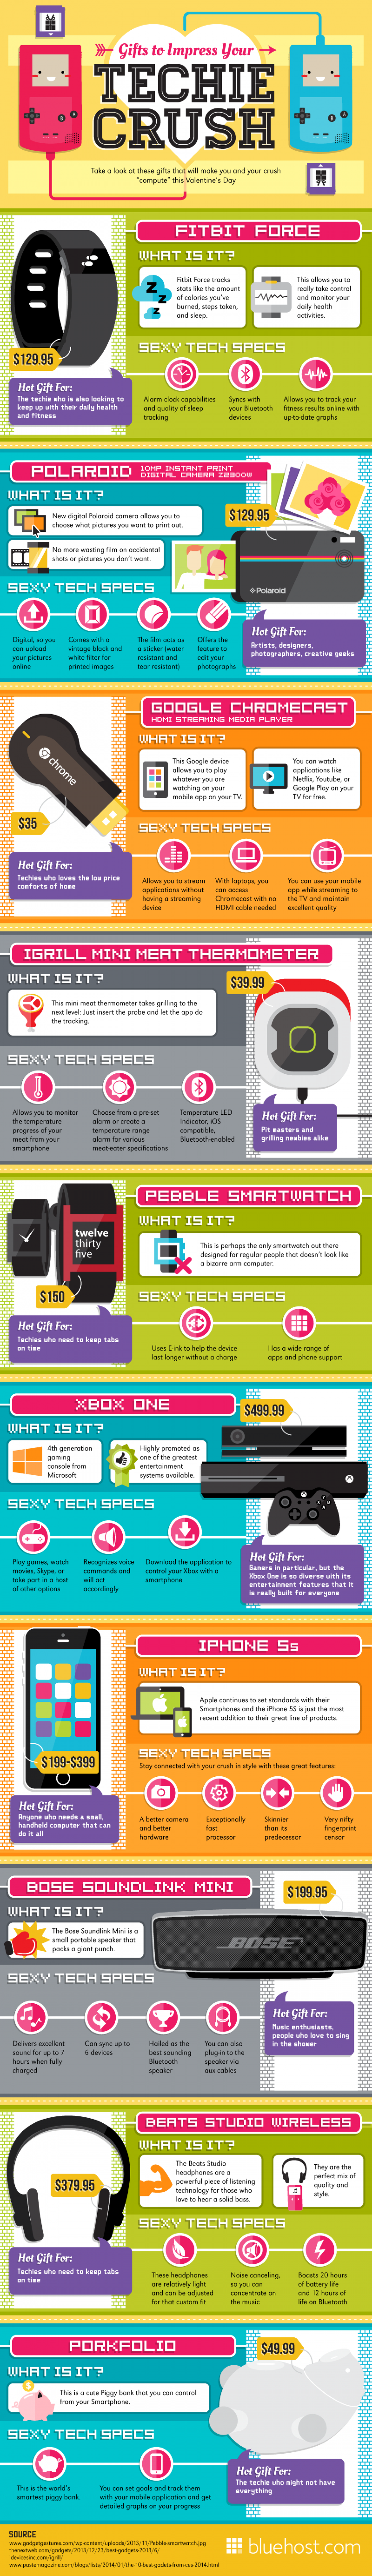 Gifts To Impress Yours Techie Crush  for Valentine's Day  Infographic